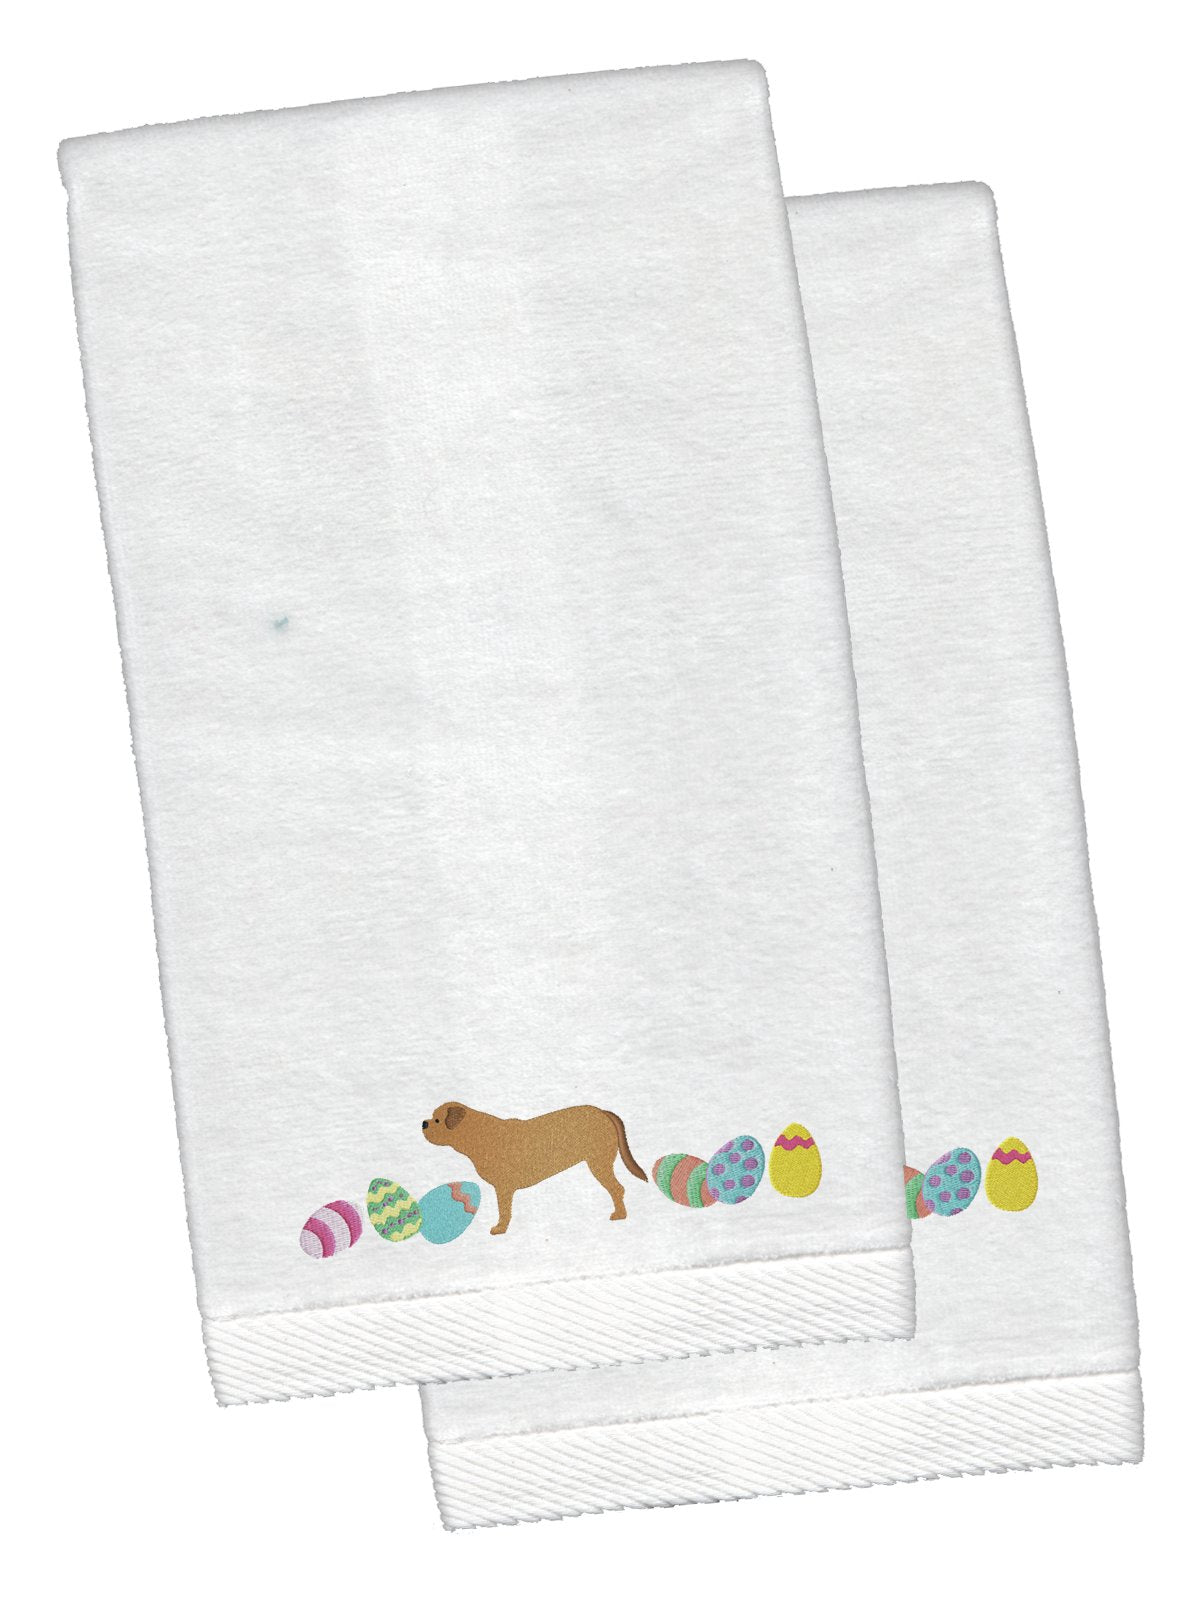 Dogue de Bordeaux Easter White Embroidered Plush Hand Towel Set of 2 CK1635KTEMB by Caroline's Treasures